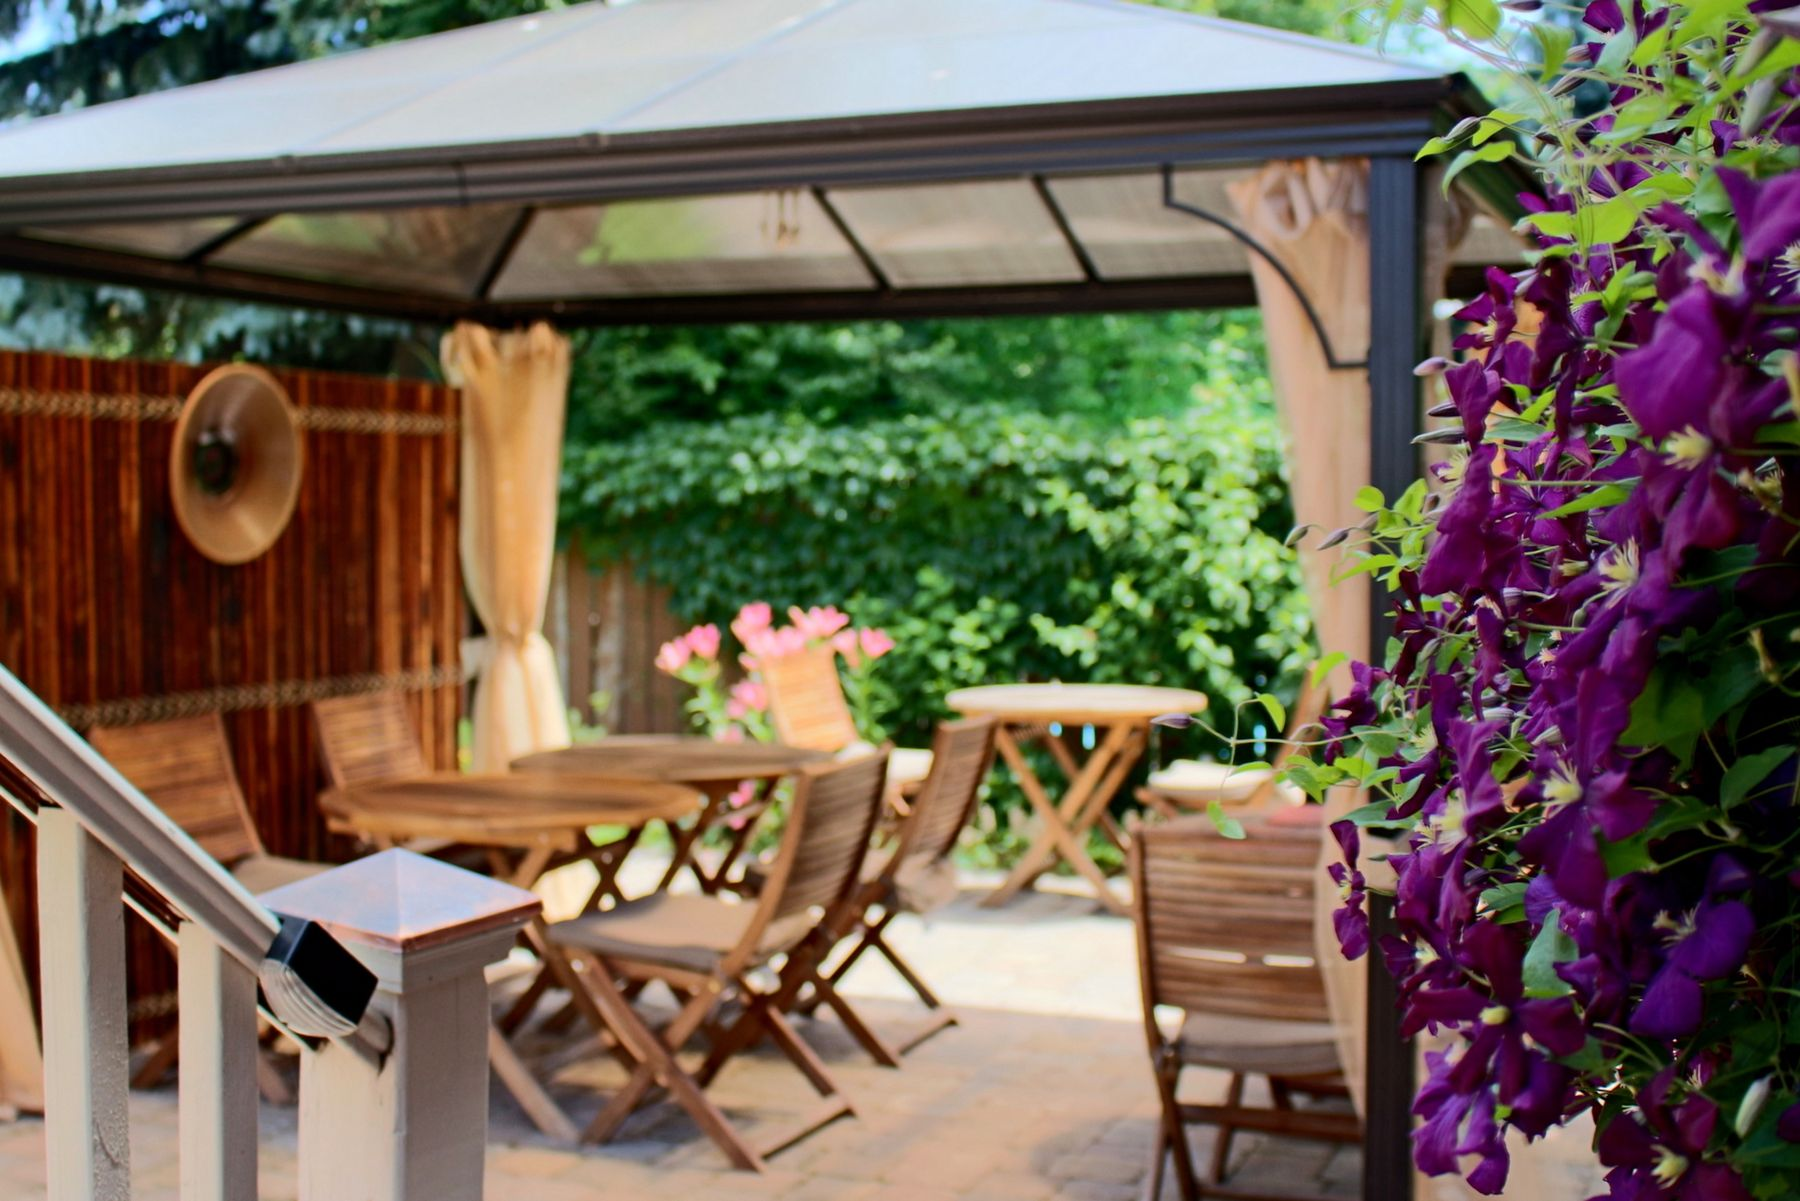 Outside patio with wooden furniture and garden at Globetrotters Bed and Breakfast in Niagara-on-the-Lake, Ontario